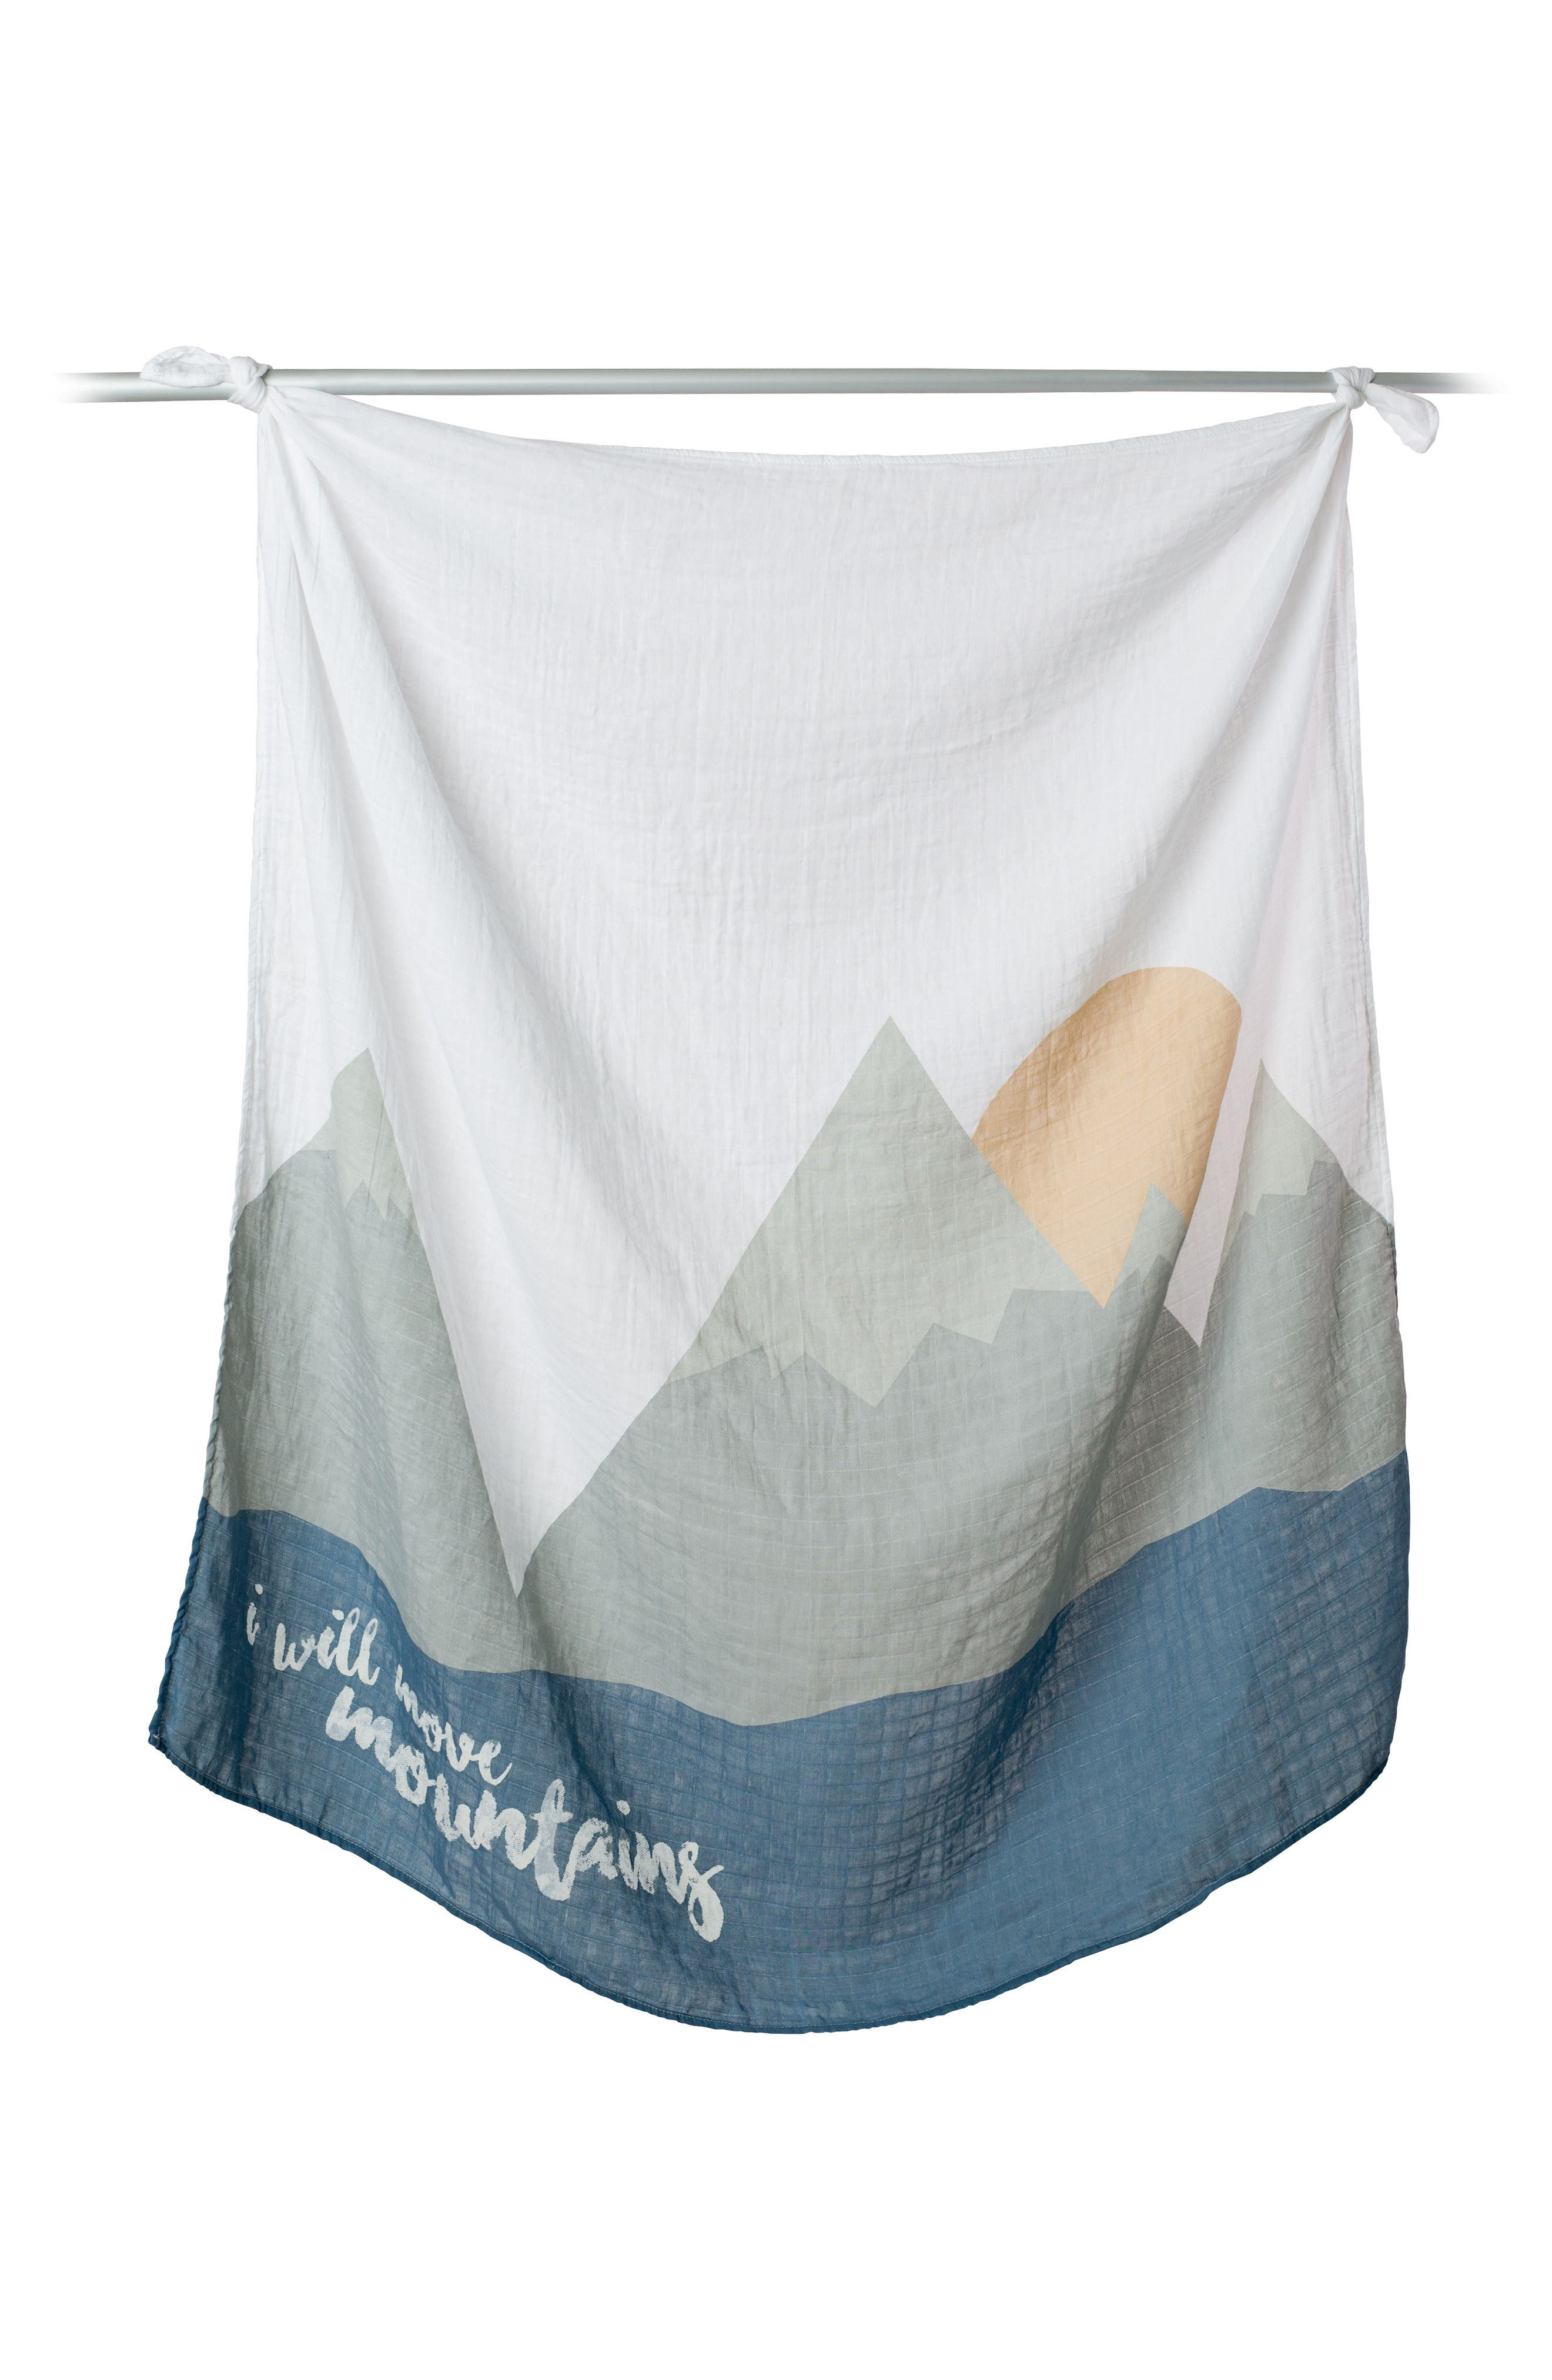 Baby's First Year - I Will Move Mountains Muslin Blanket & Milestone Card Set,                         Main,                         color, Will Move Mountains